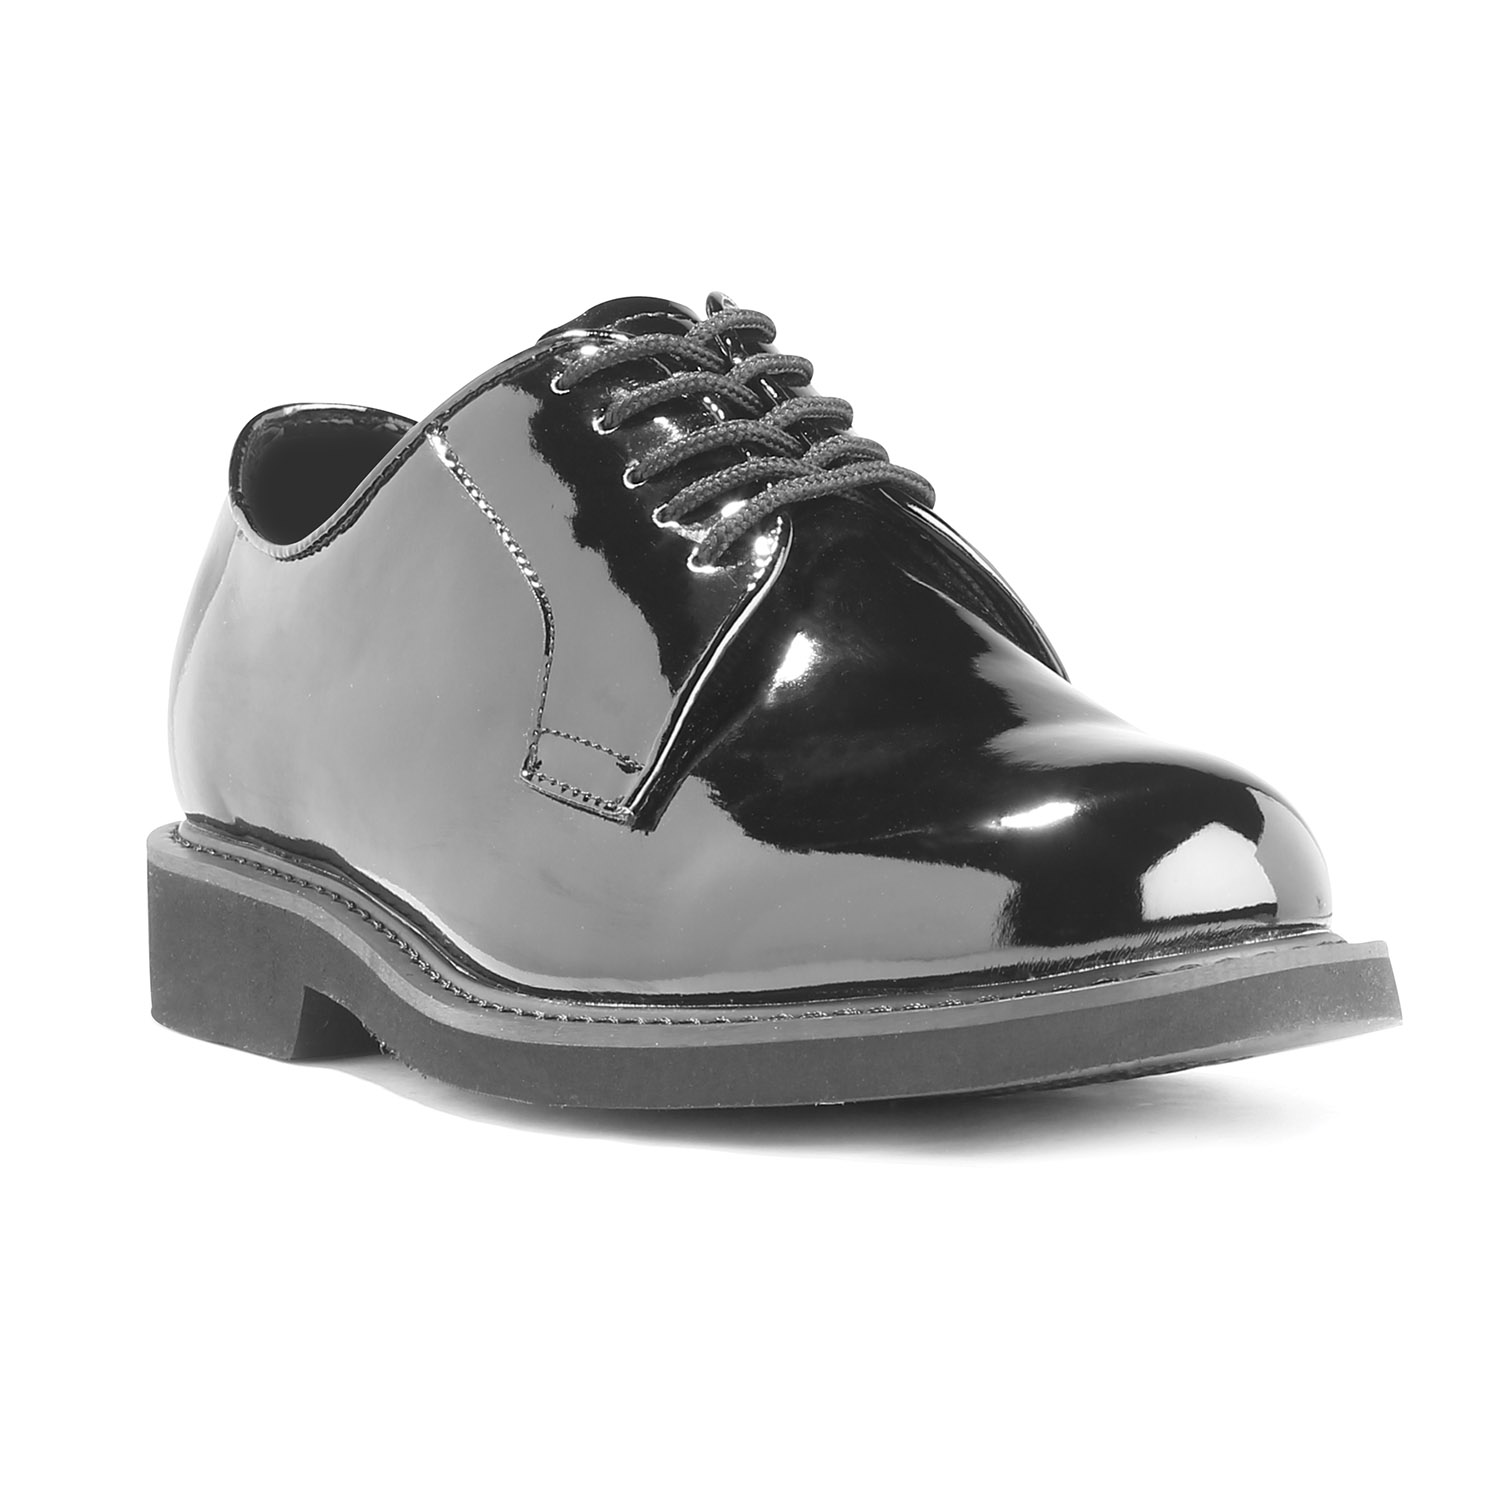 LawPro Hi-Gloss Oxfords